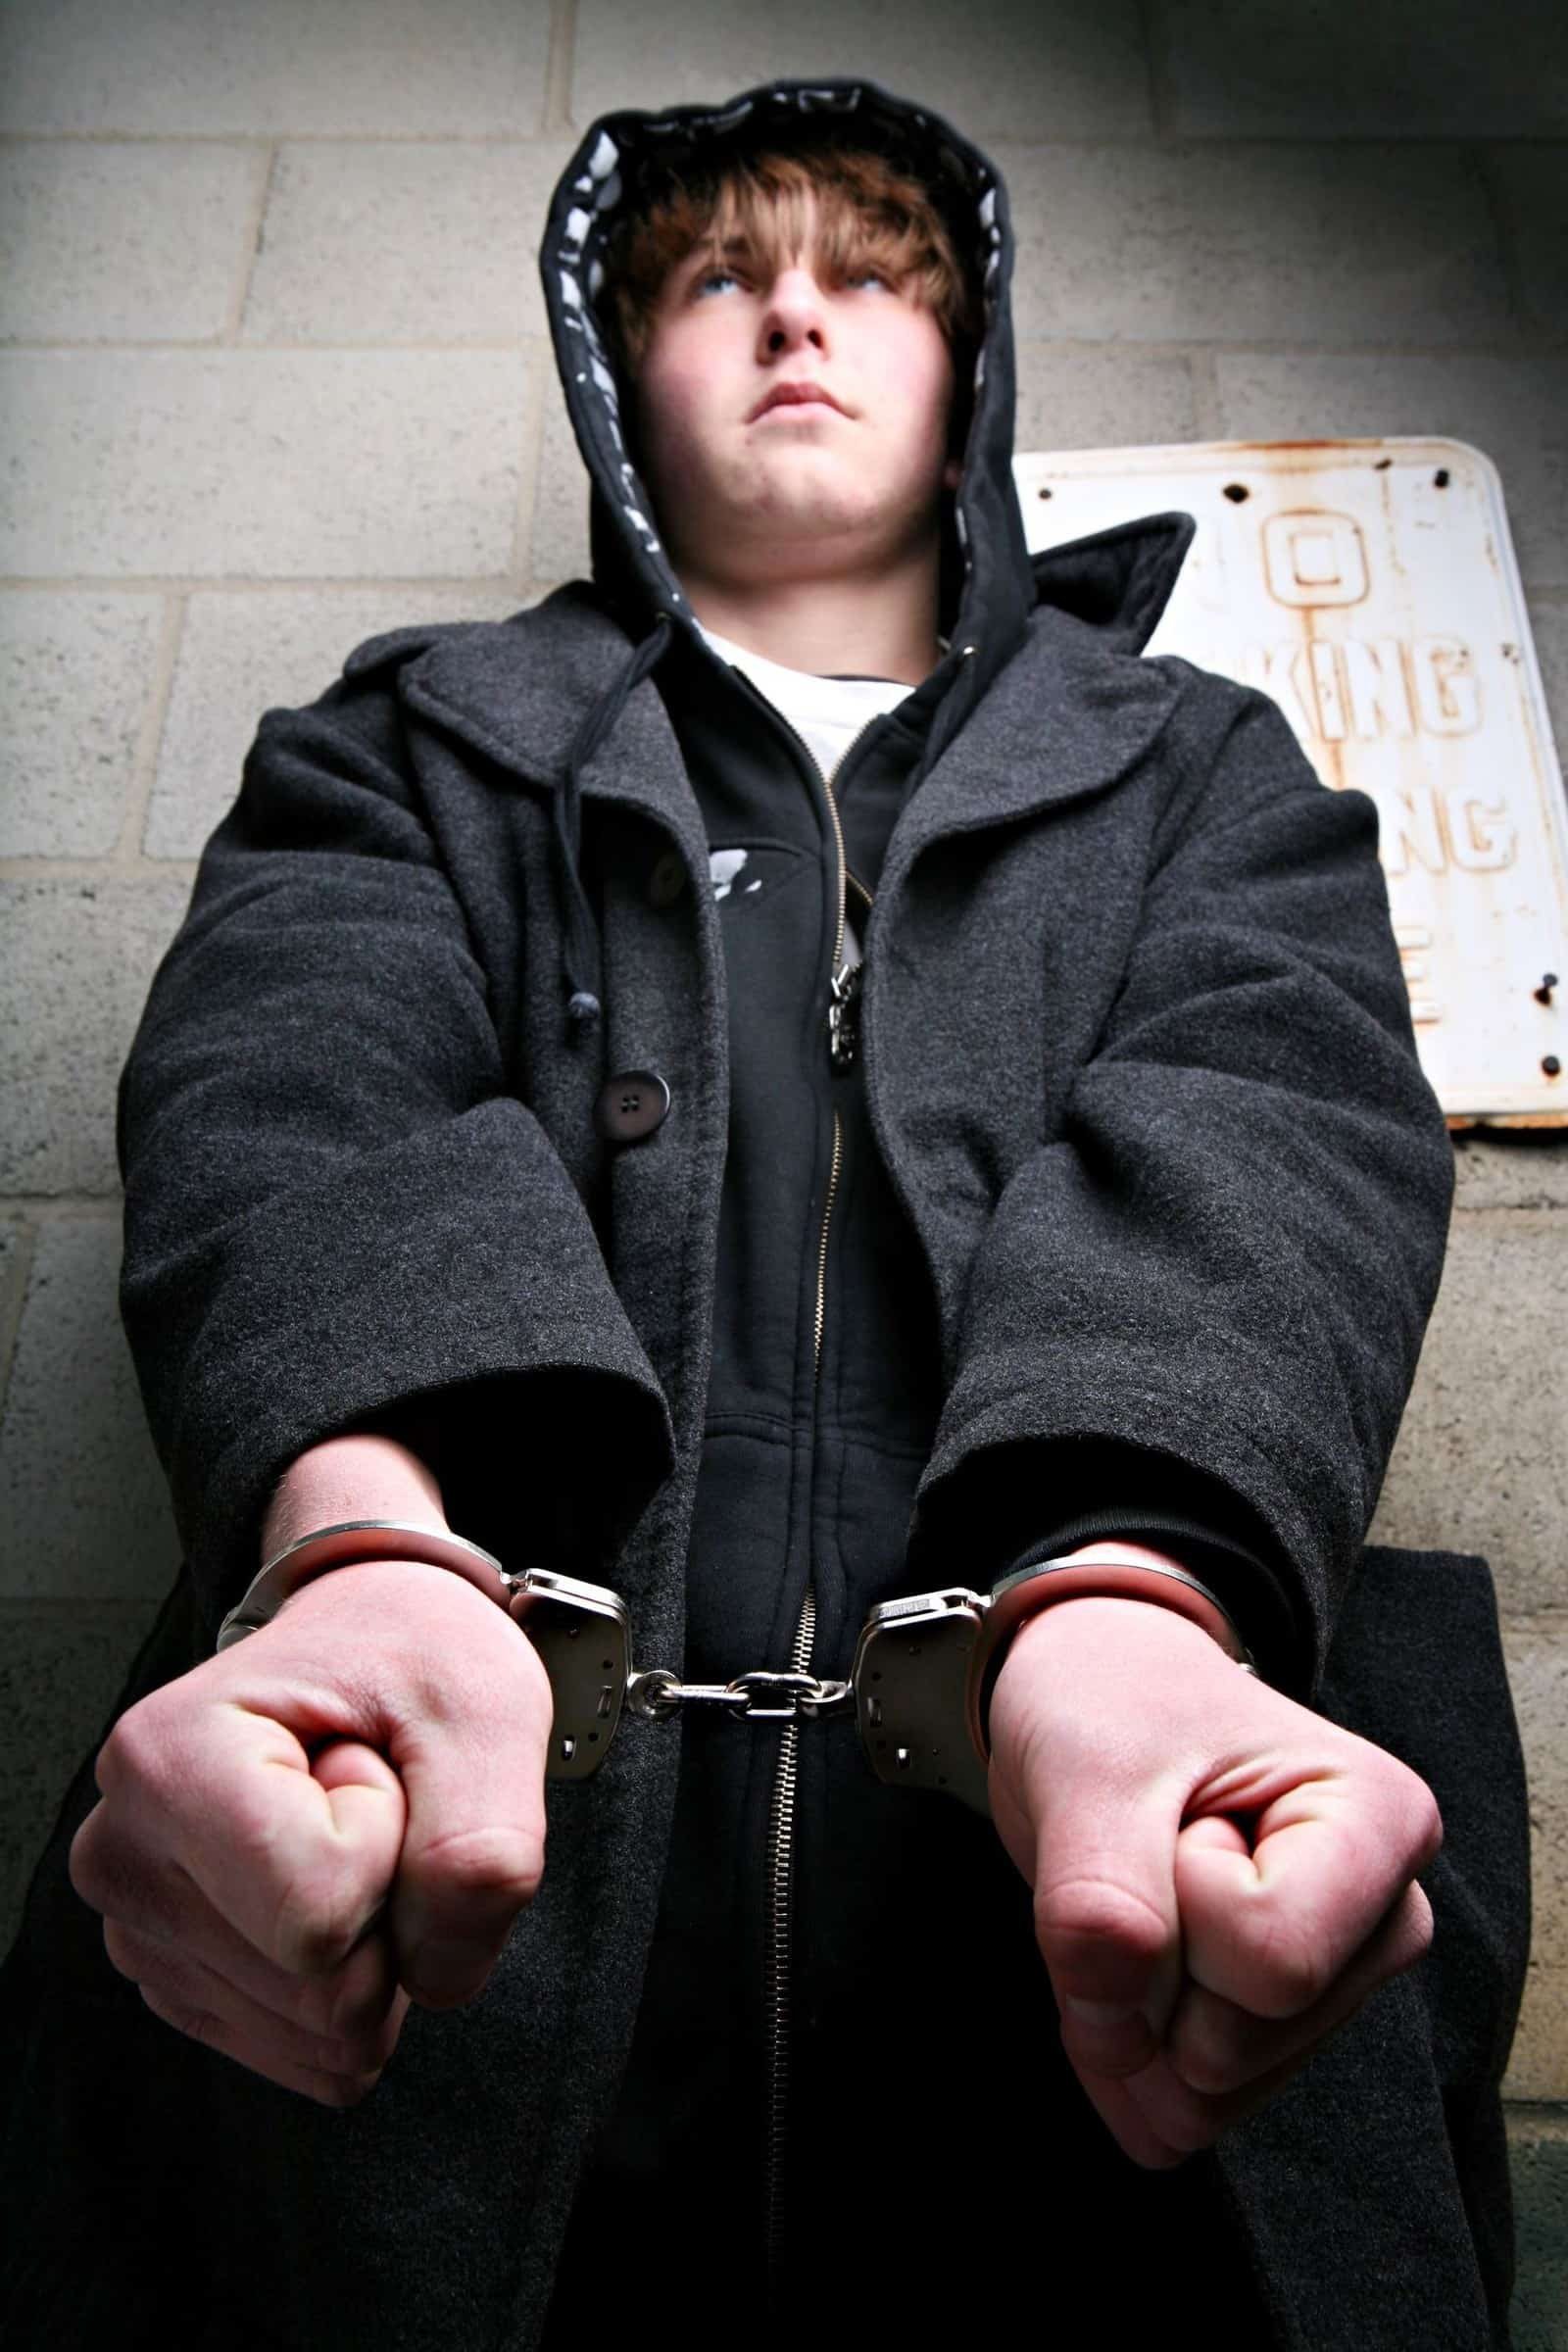 juvenile delinquency and juvenile crime article Regardless of the causes, juvenile delinquency carries a high cost to the american system these costs can be measured in terms of money spent and lost, as well as moral costs to a society government is forced to pay more for increased policing, as well as the costs of the entire judicial system process (prisons, juvenile halls, court trials.